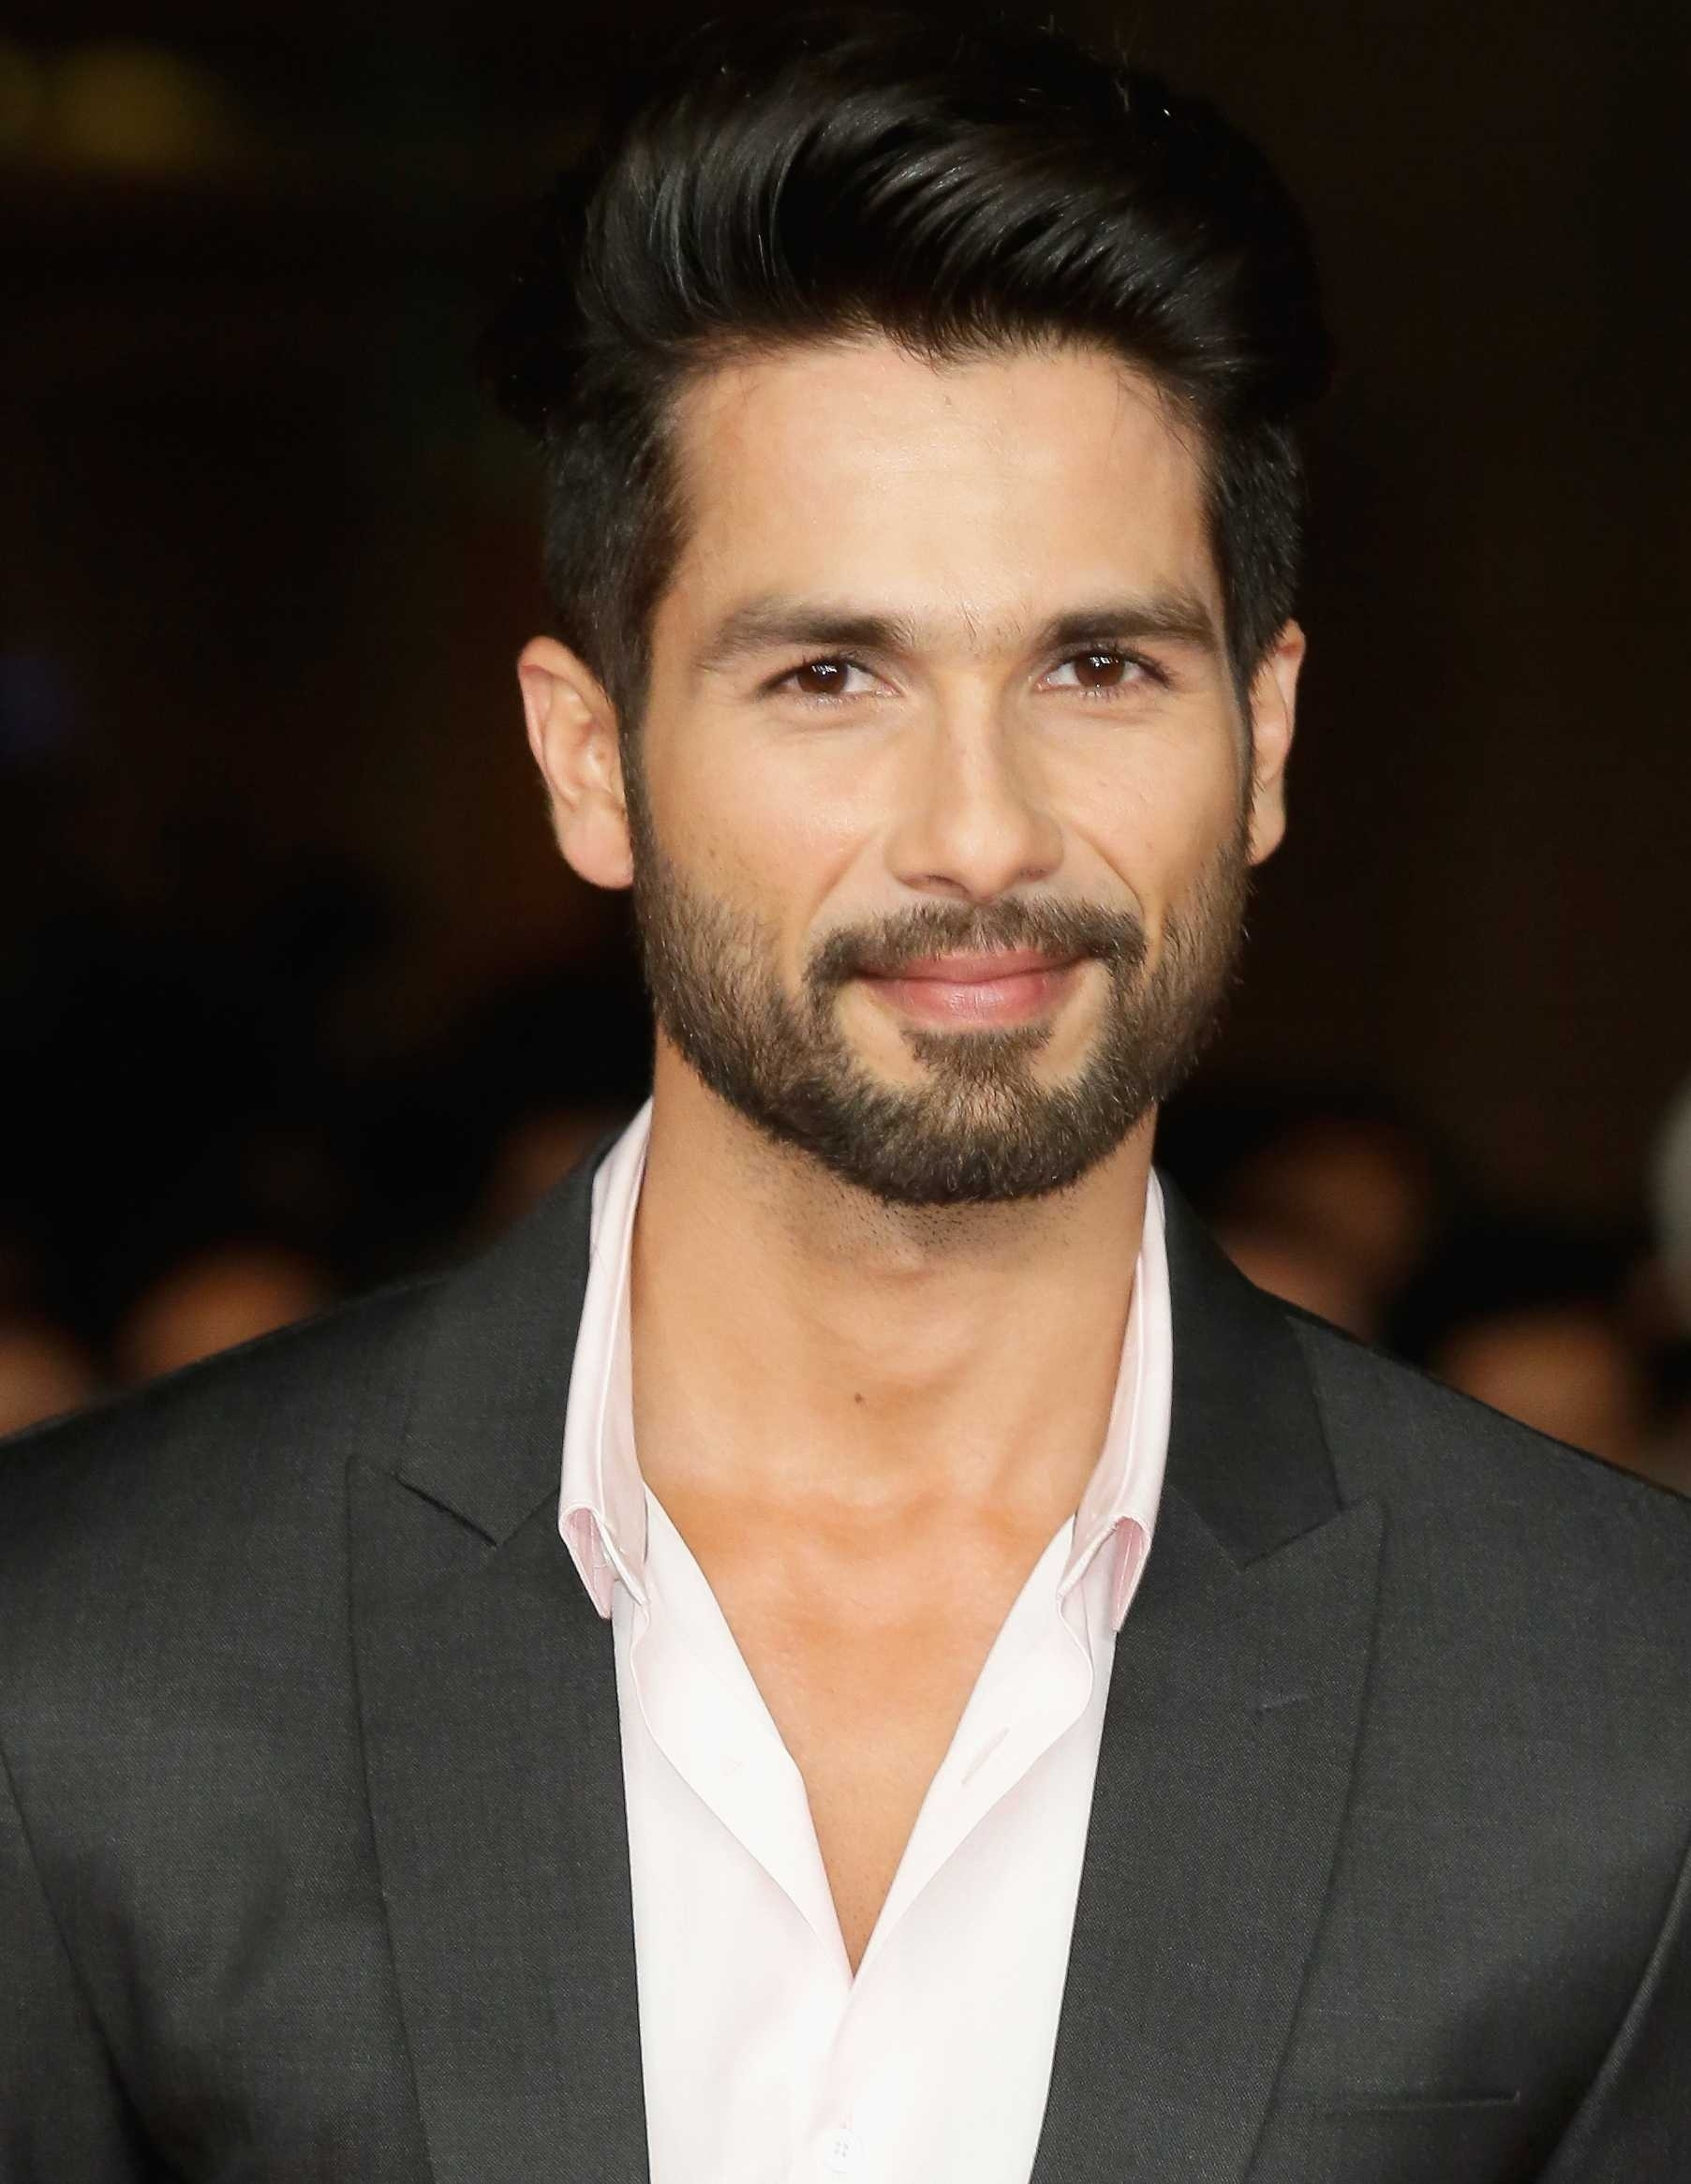 Haircut Styles For Men - How To Choose The Best Hairstyle For Your regarding Hairstyle For Square Face Male Indian